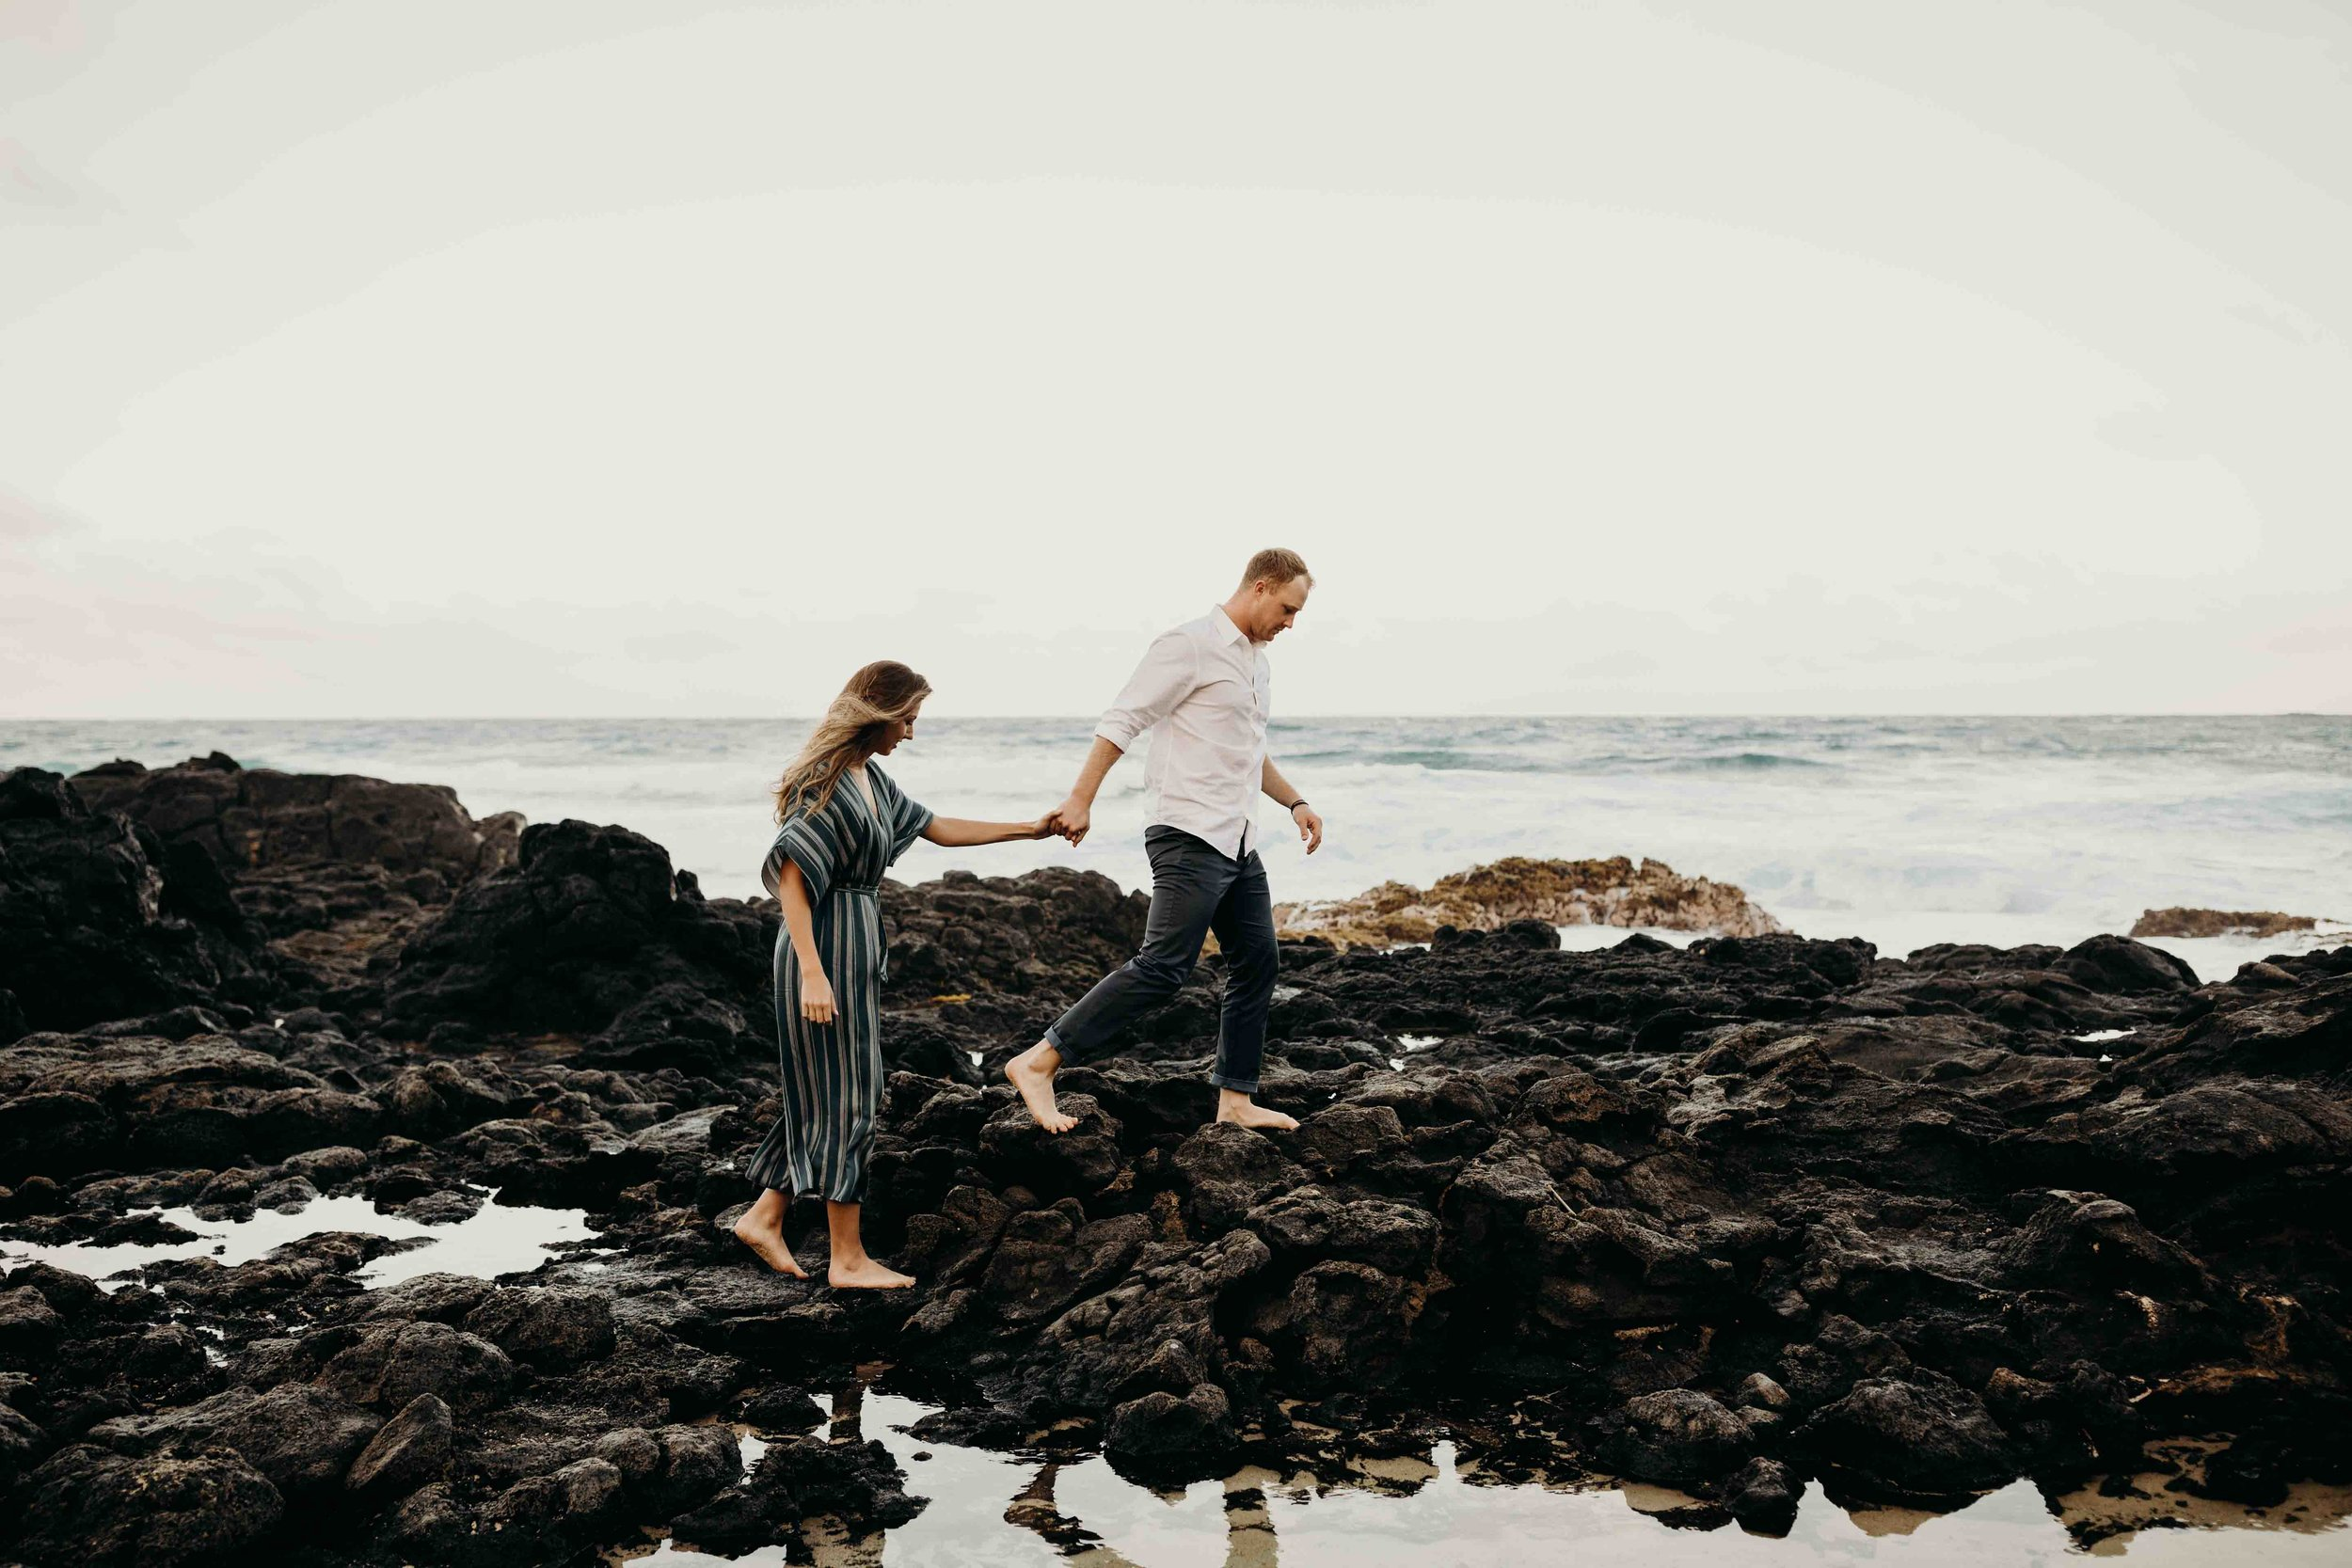 hawaii-engagement-photographer-keani-bakula-makapuu-beach-9.jpg